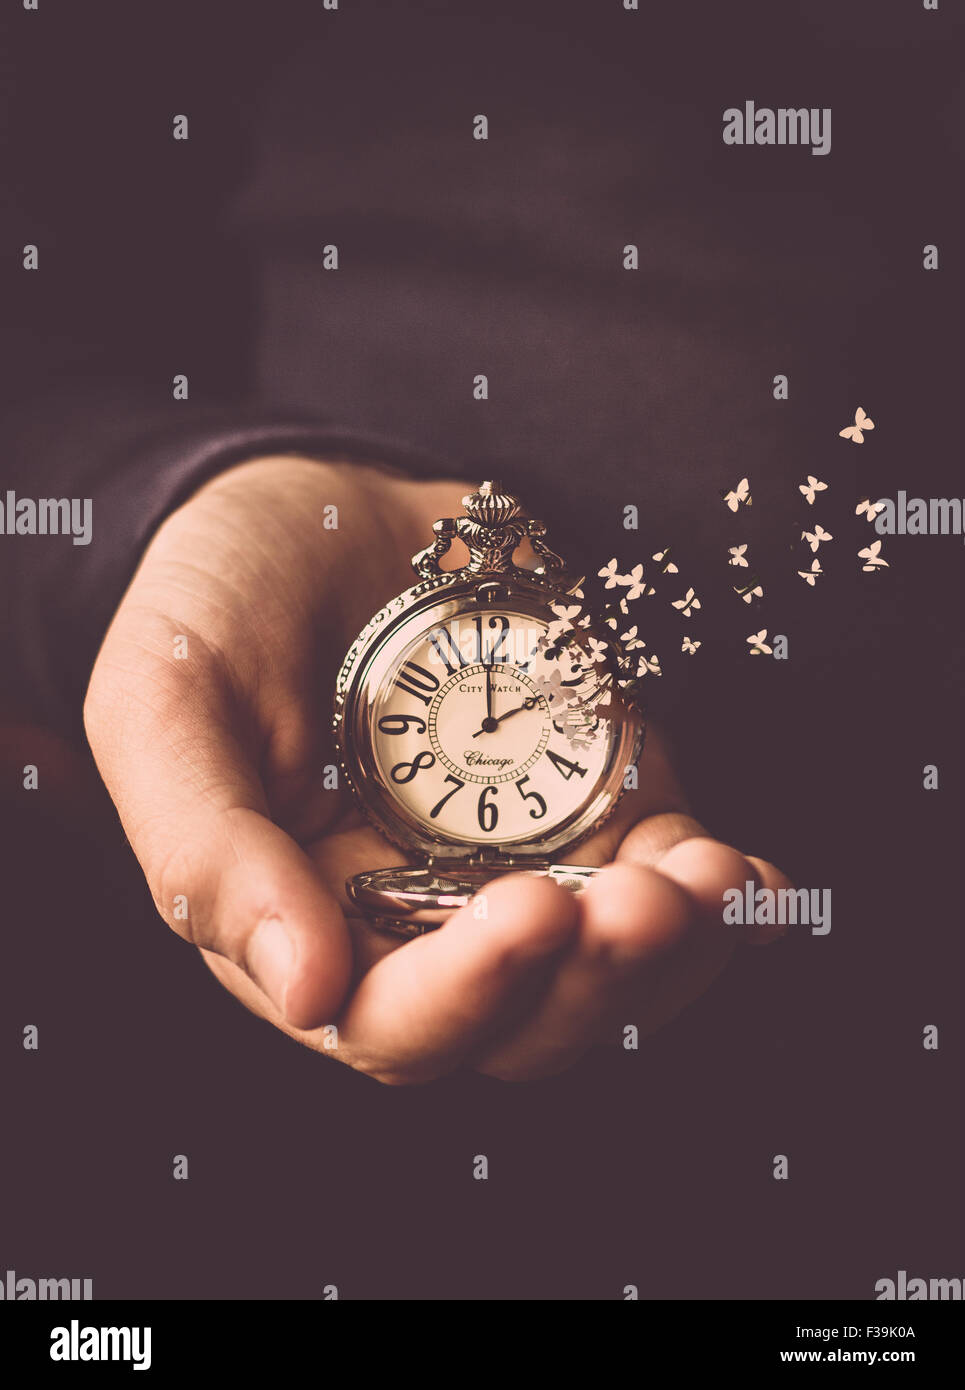 Man holding a watch in his hand with time flying off the clock face like butterflies - Stock Image